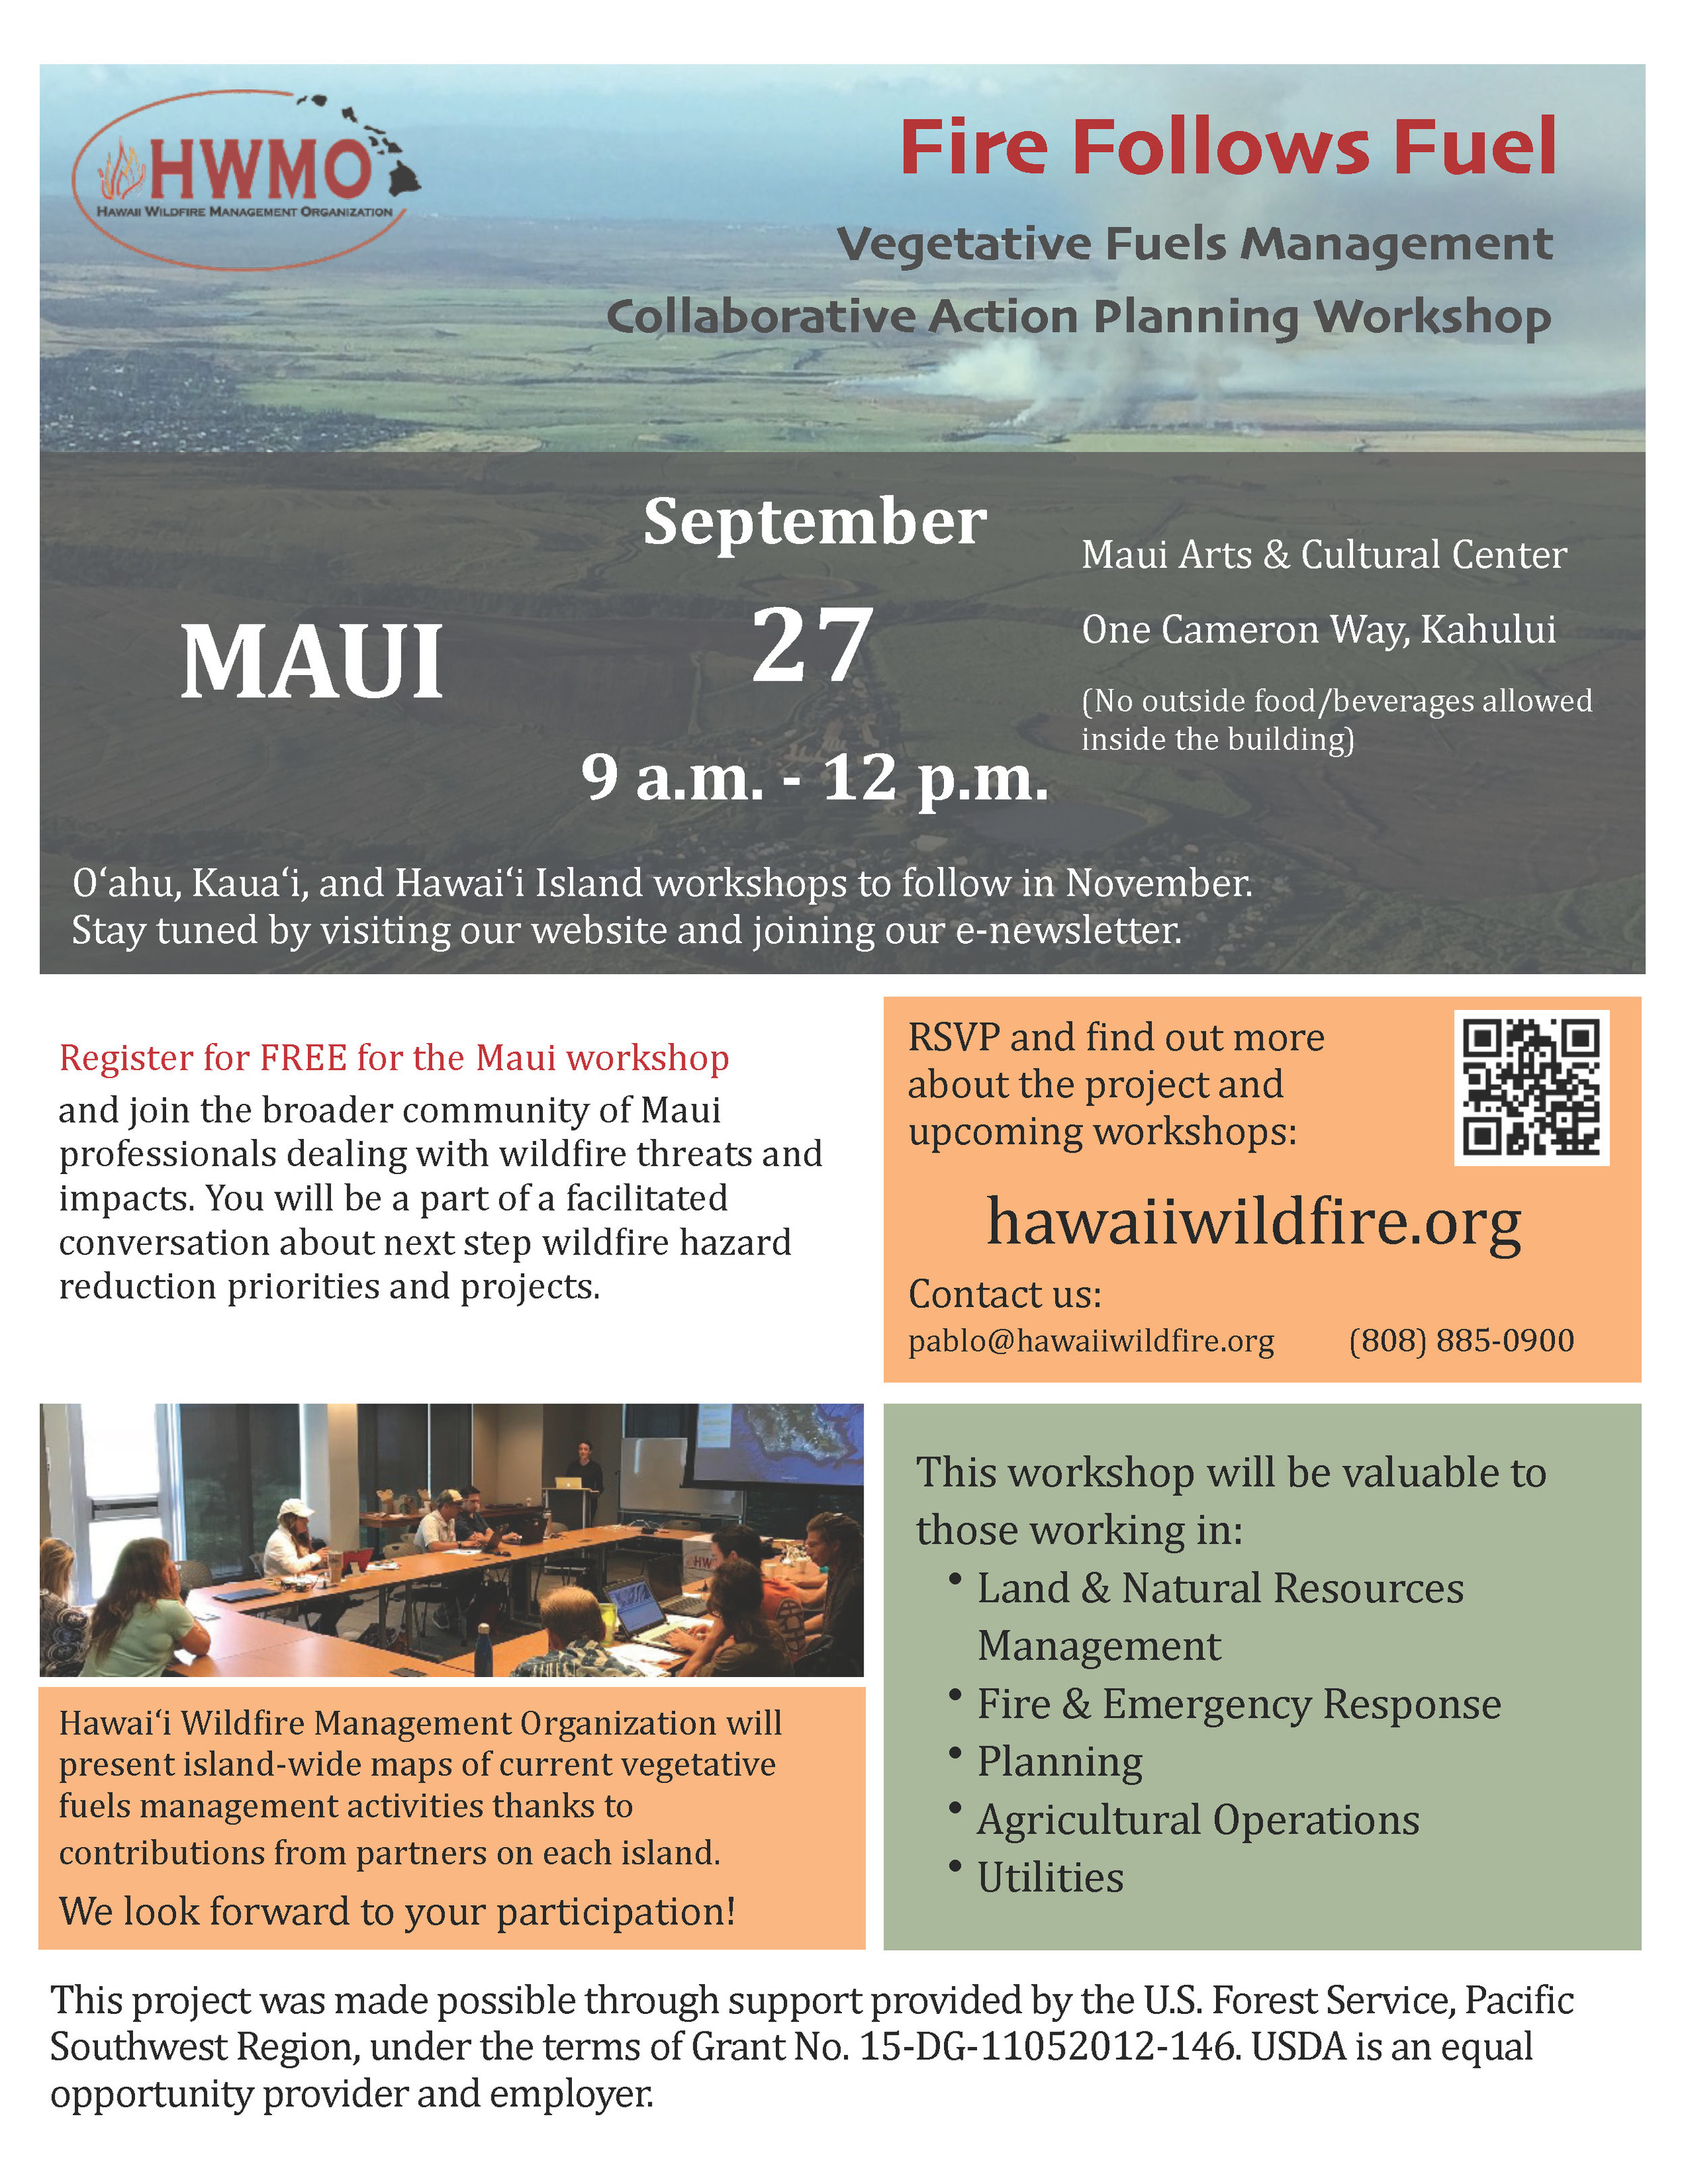 Maui Vegetative Fuels Management Collaborative Action Planning Flyer.jpg